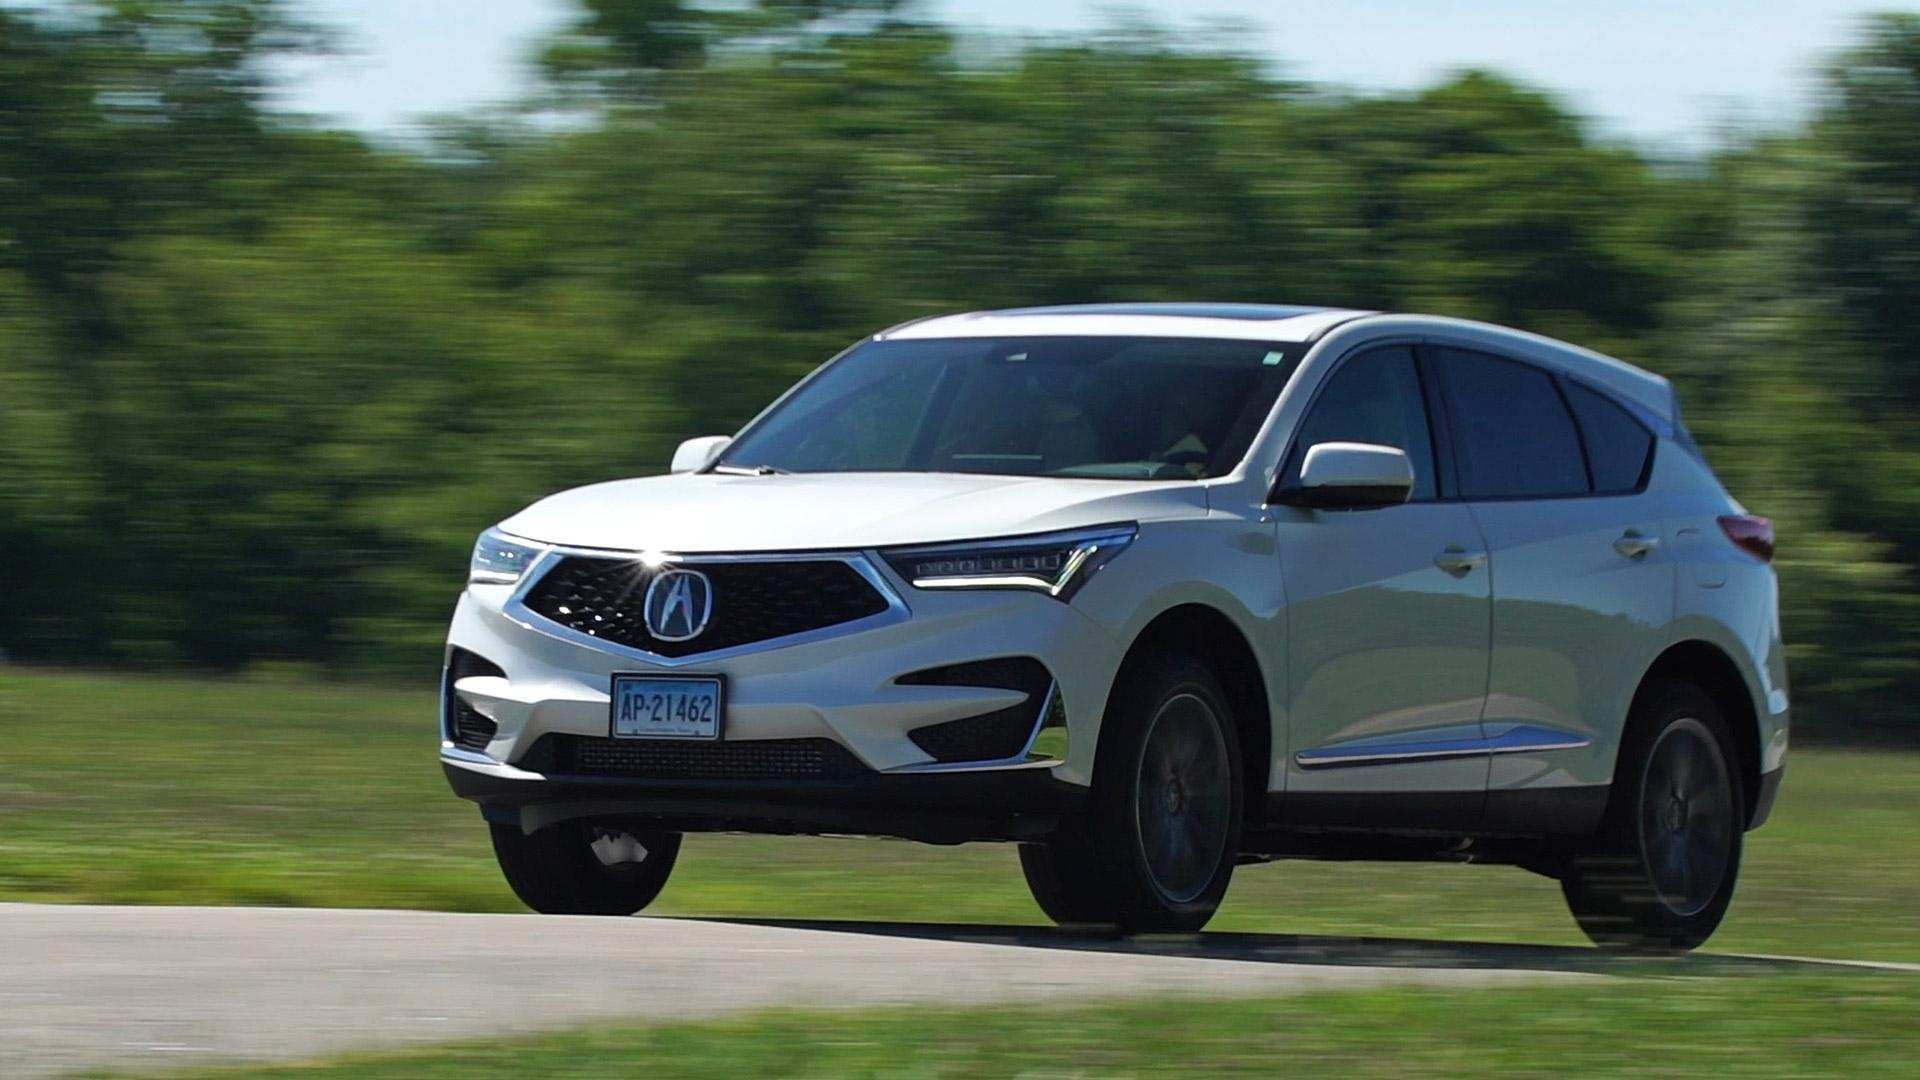 21 New The Acura Rdx 2019 Lane Keep Assist Review Ratings by The Acura Rdx 2019 Lane Keep Assist Review